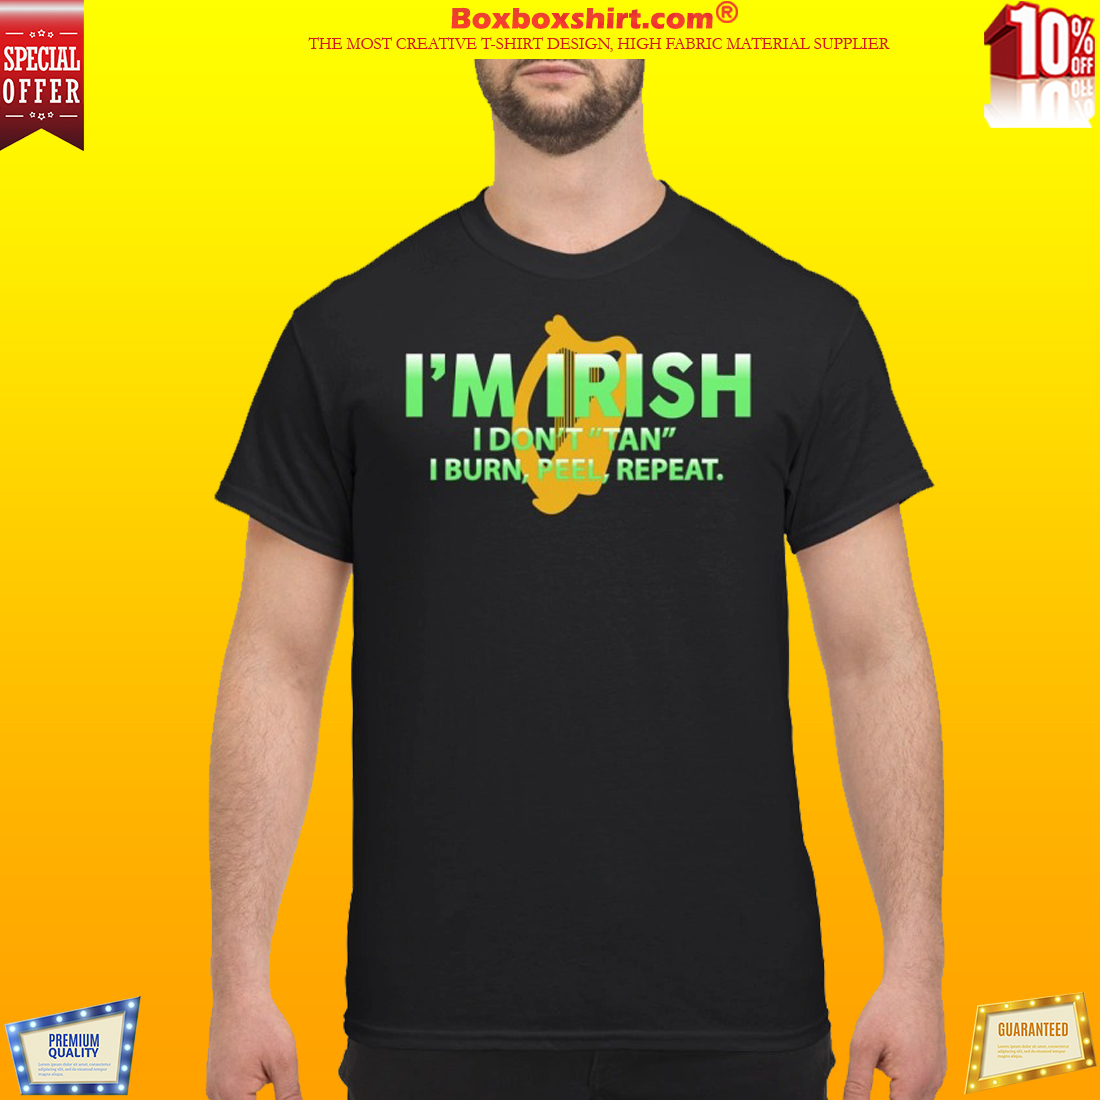 I'm irish I don't tan I burn feel repeat classic shirt